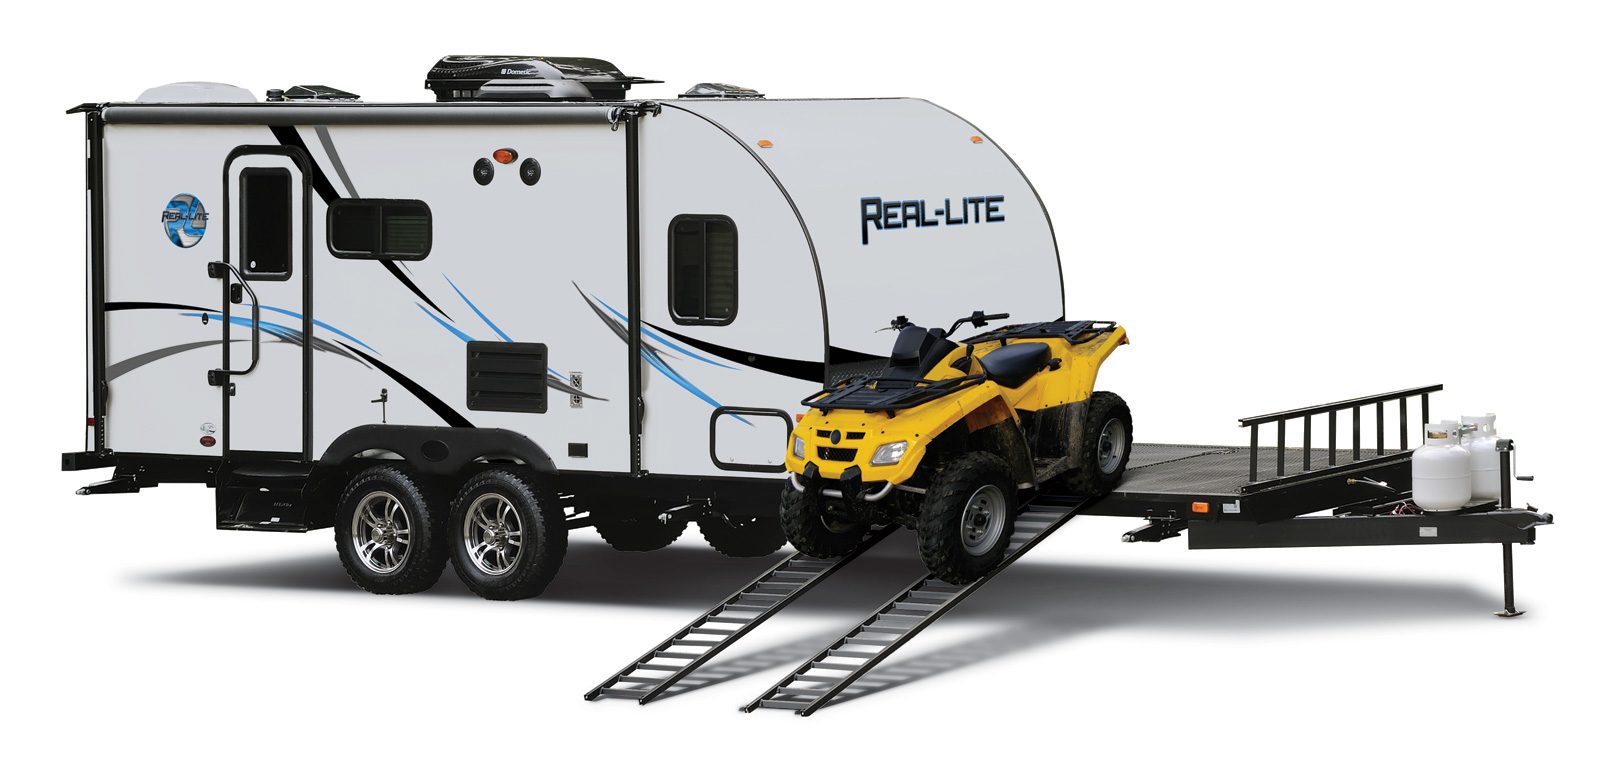 REAL-LITE TRAVEL TRAILERS